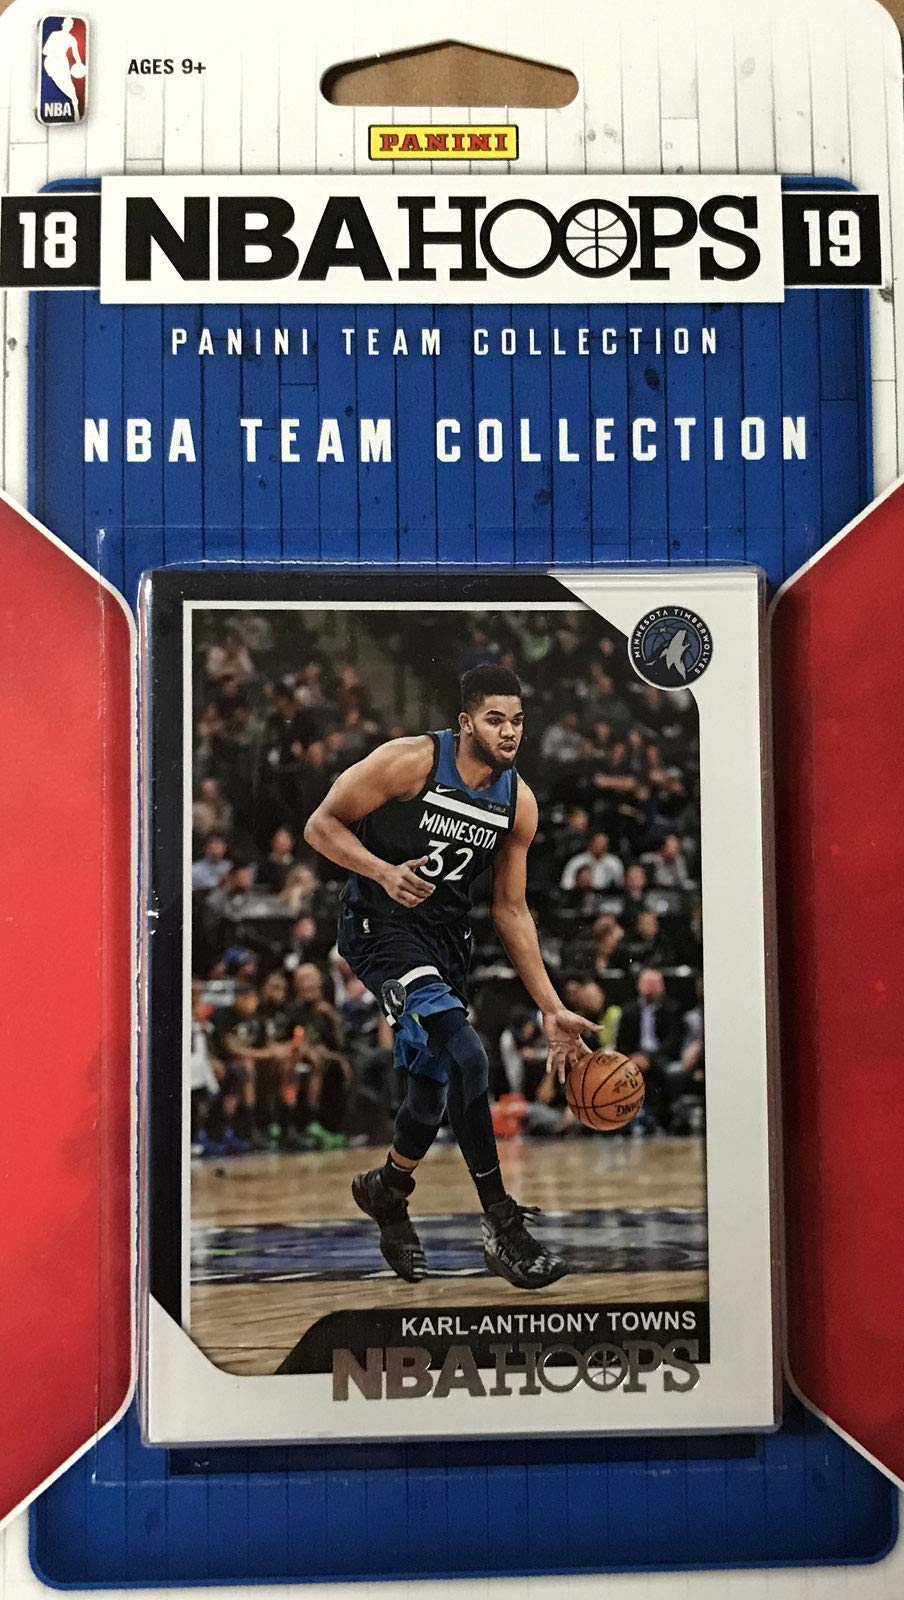 Minnesota Timberwolves 2018 2019 Hoops Basketball Factory Sealed 11 Card NBA Licensed Team Set with Karl Anthony Towns and Tyus Jones Plus Rookie Cards of Keita Bates Diop and Josh Okogie and More